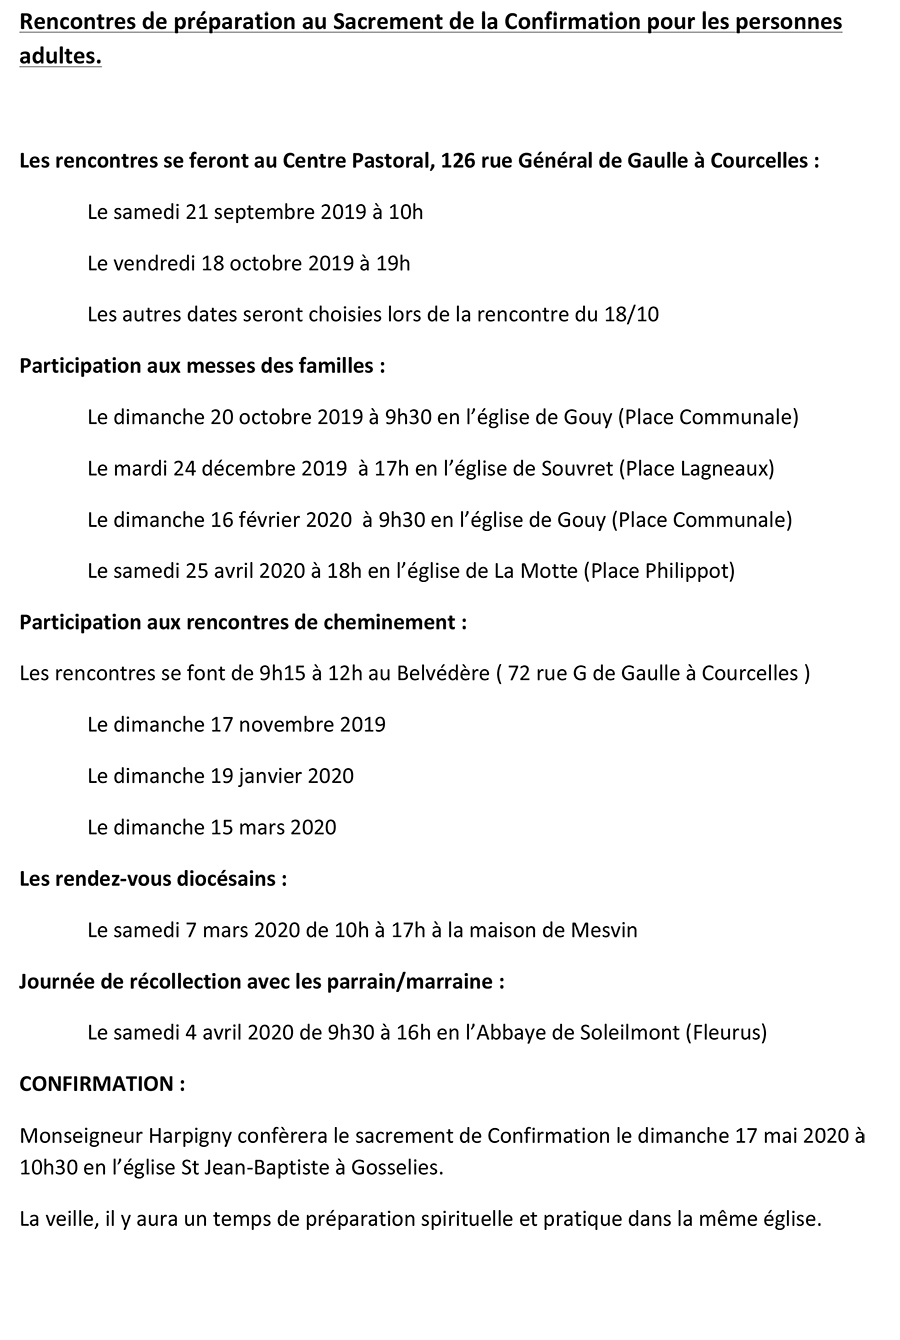 rencontres-preparation-au-sacrement-confirmation-adultes